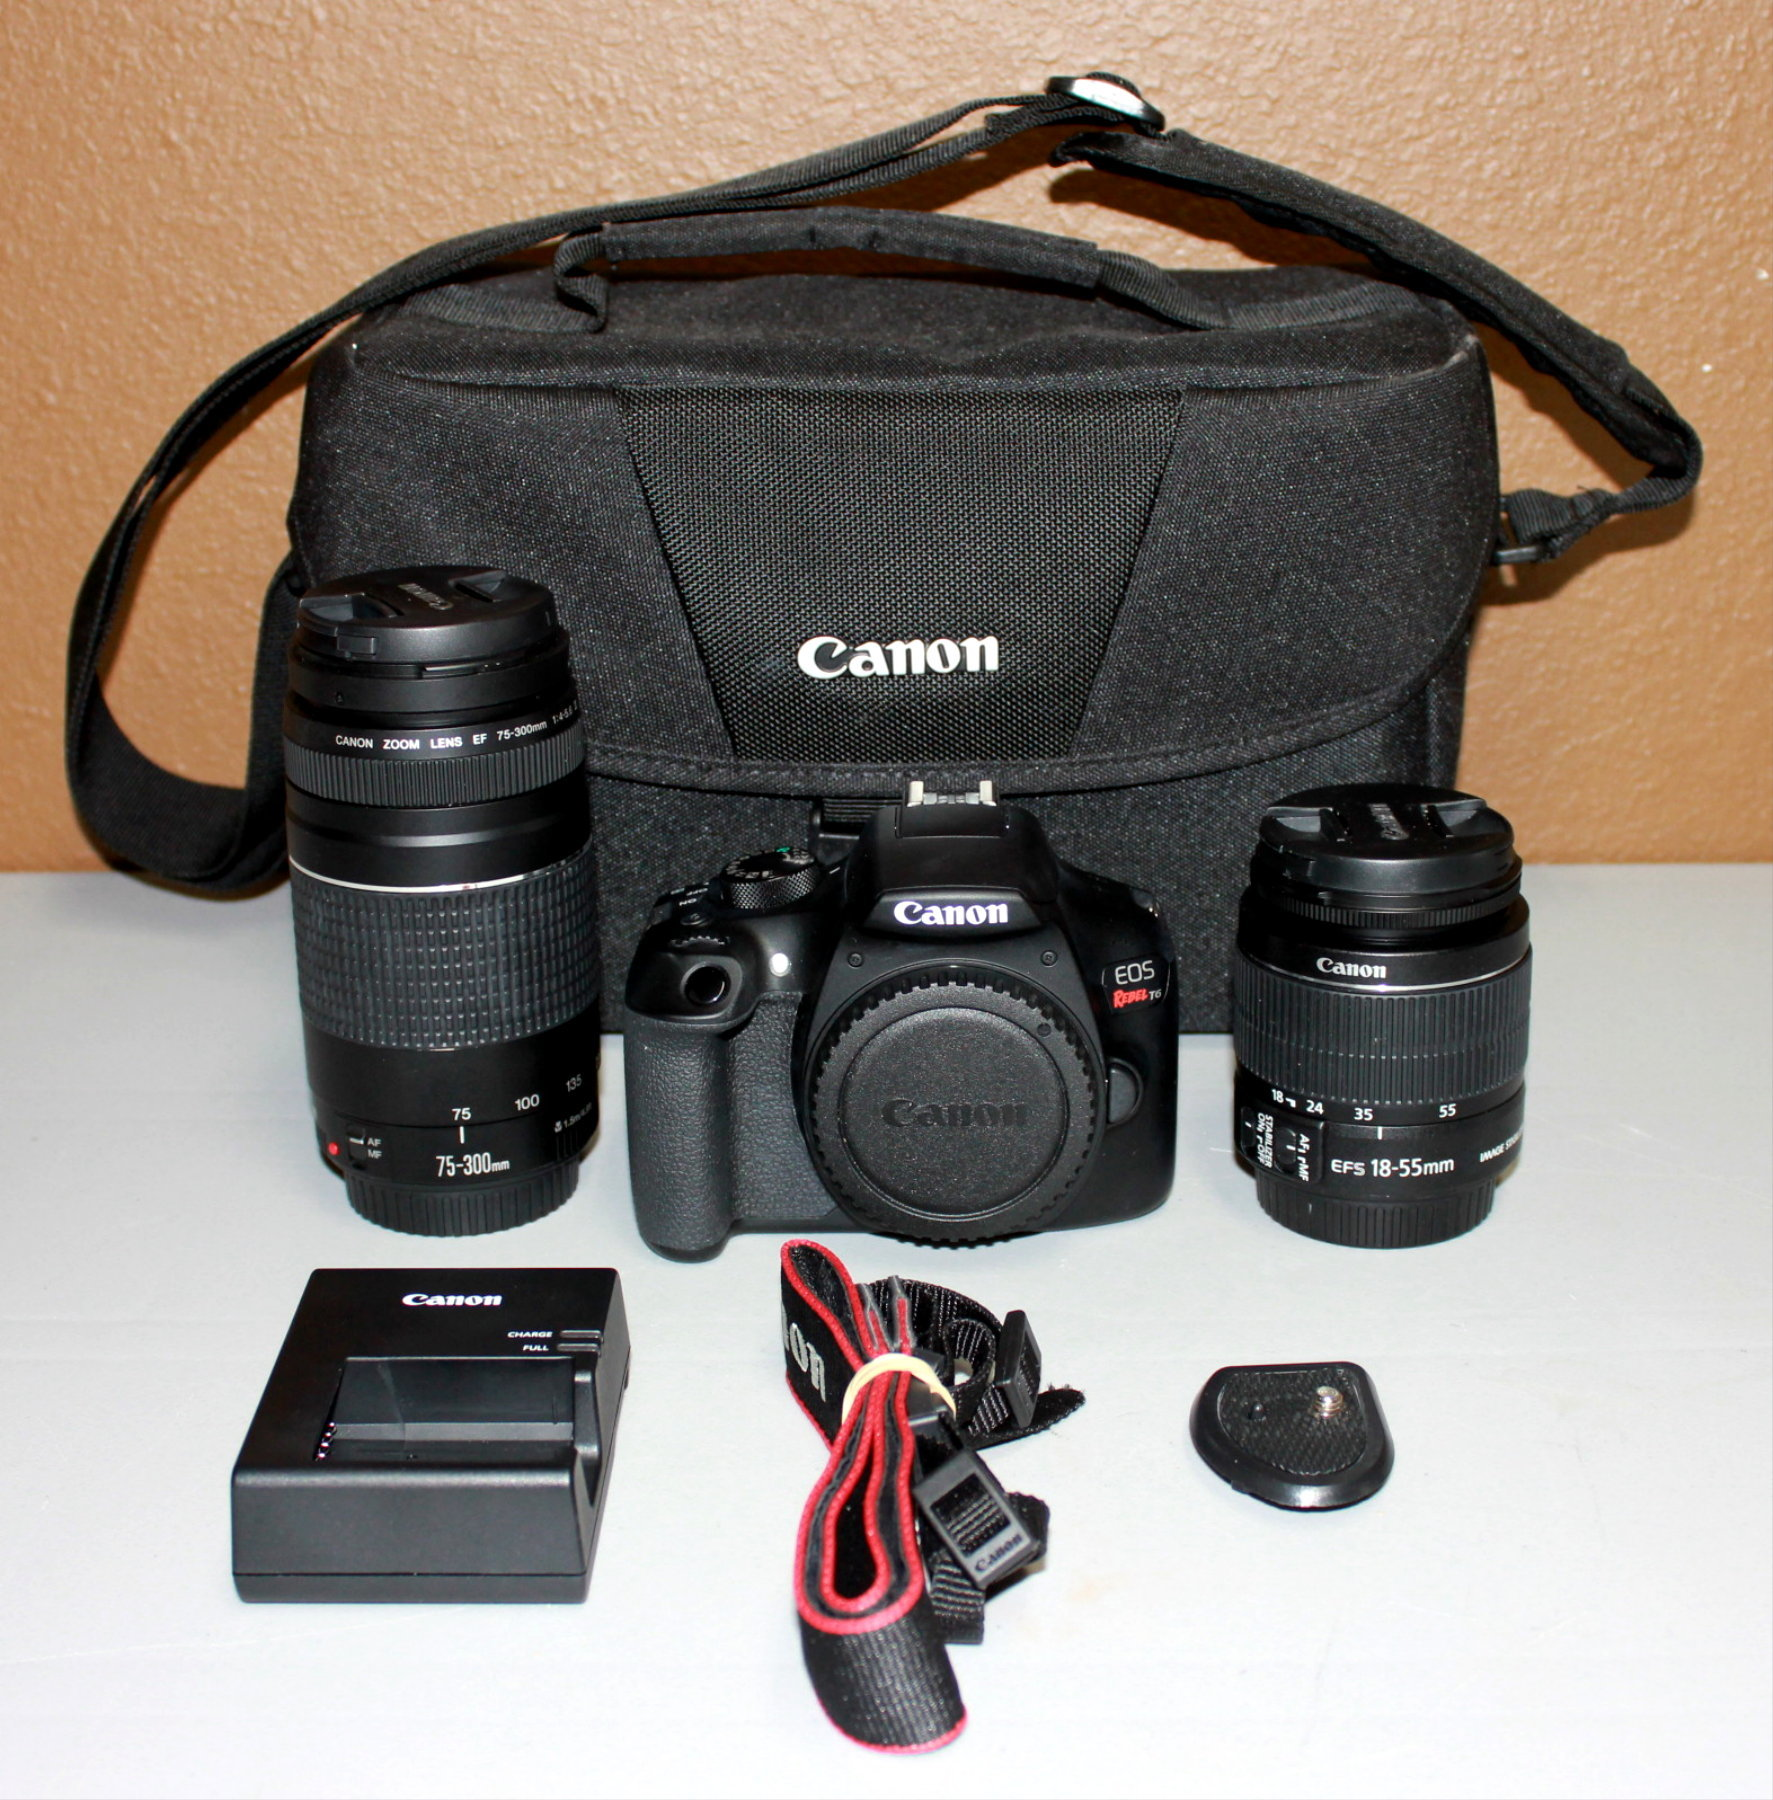 CANON EOS REBEL T6 DIGITAL CAMERA W/2 LENSES, CASE, & ACCESSORIES